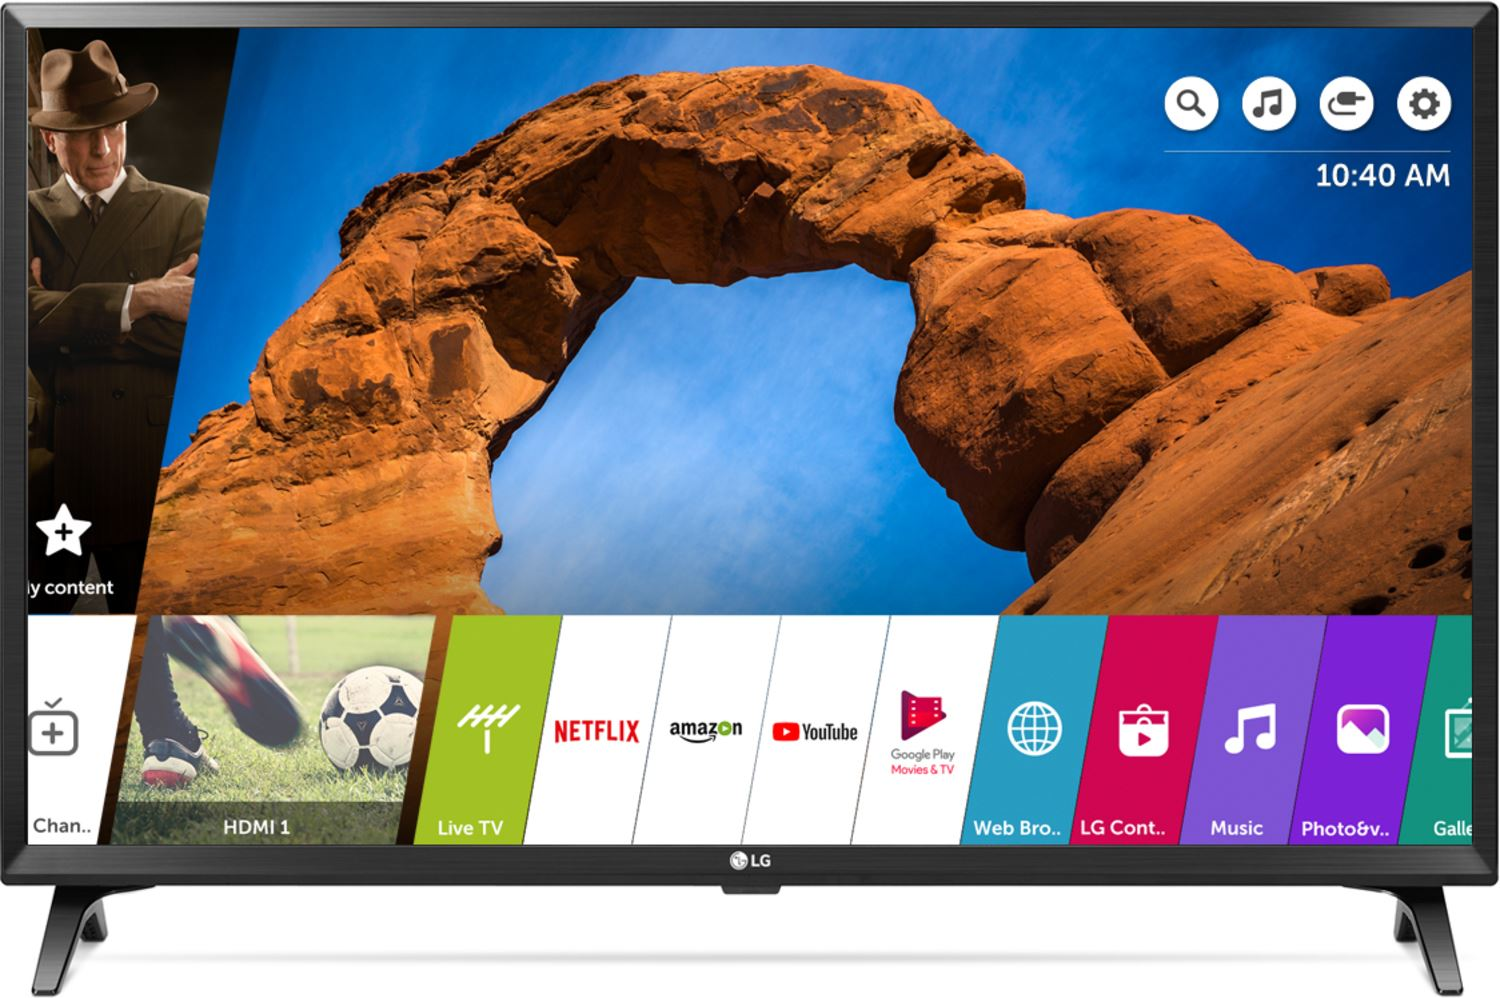 b66205719f7 Tv Led LG Smart 32'' HD 32LK540BPSA Wifi Incorp, Model.2018 - Negro |  Juntoz.com